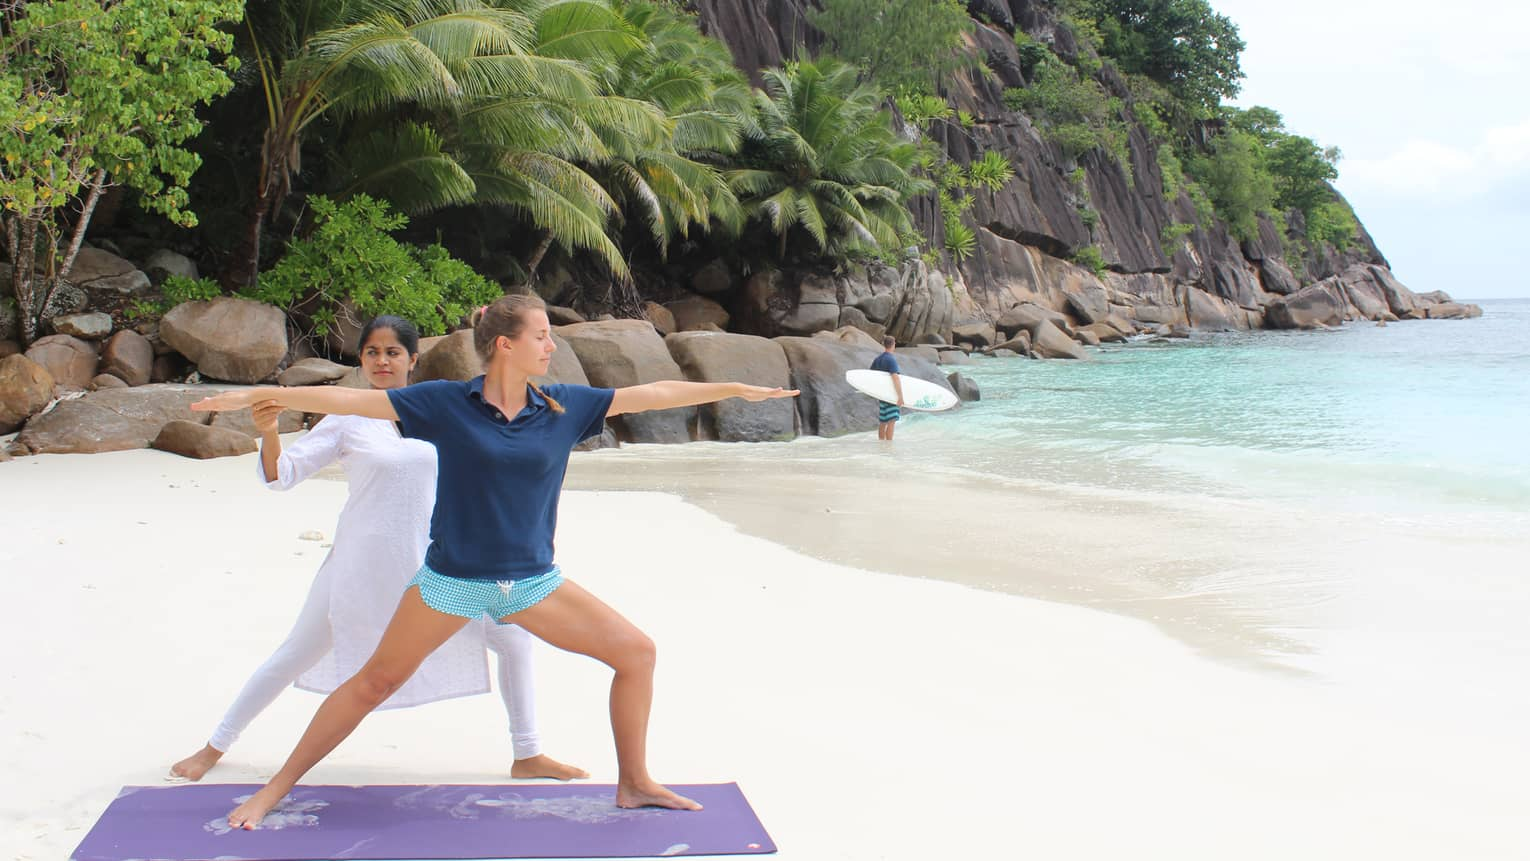 Yogi in white adjusts woman's outstretched arms in yoga pose on white sand beach